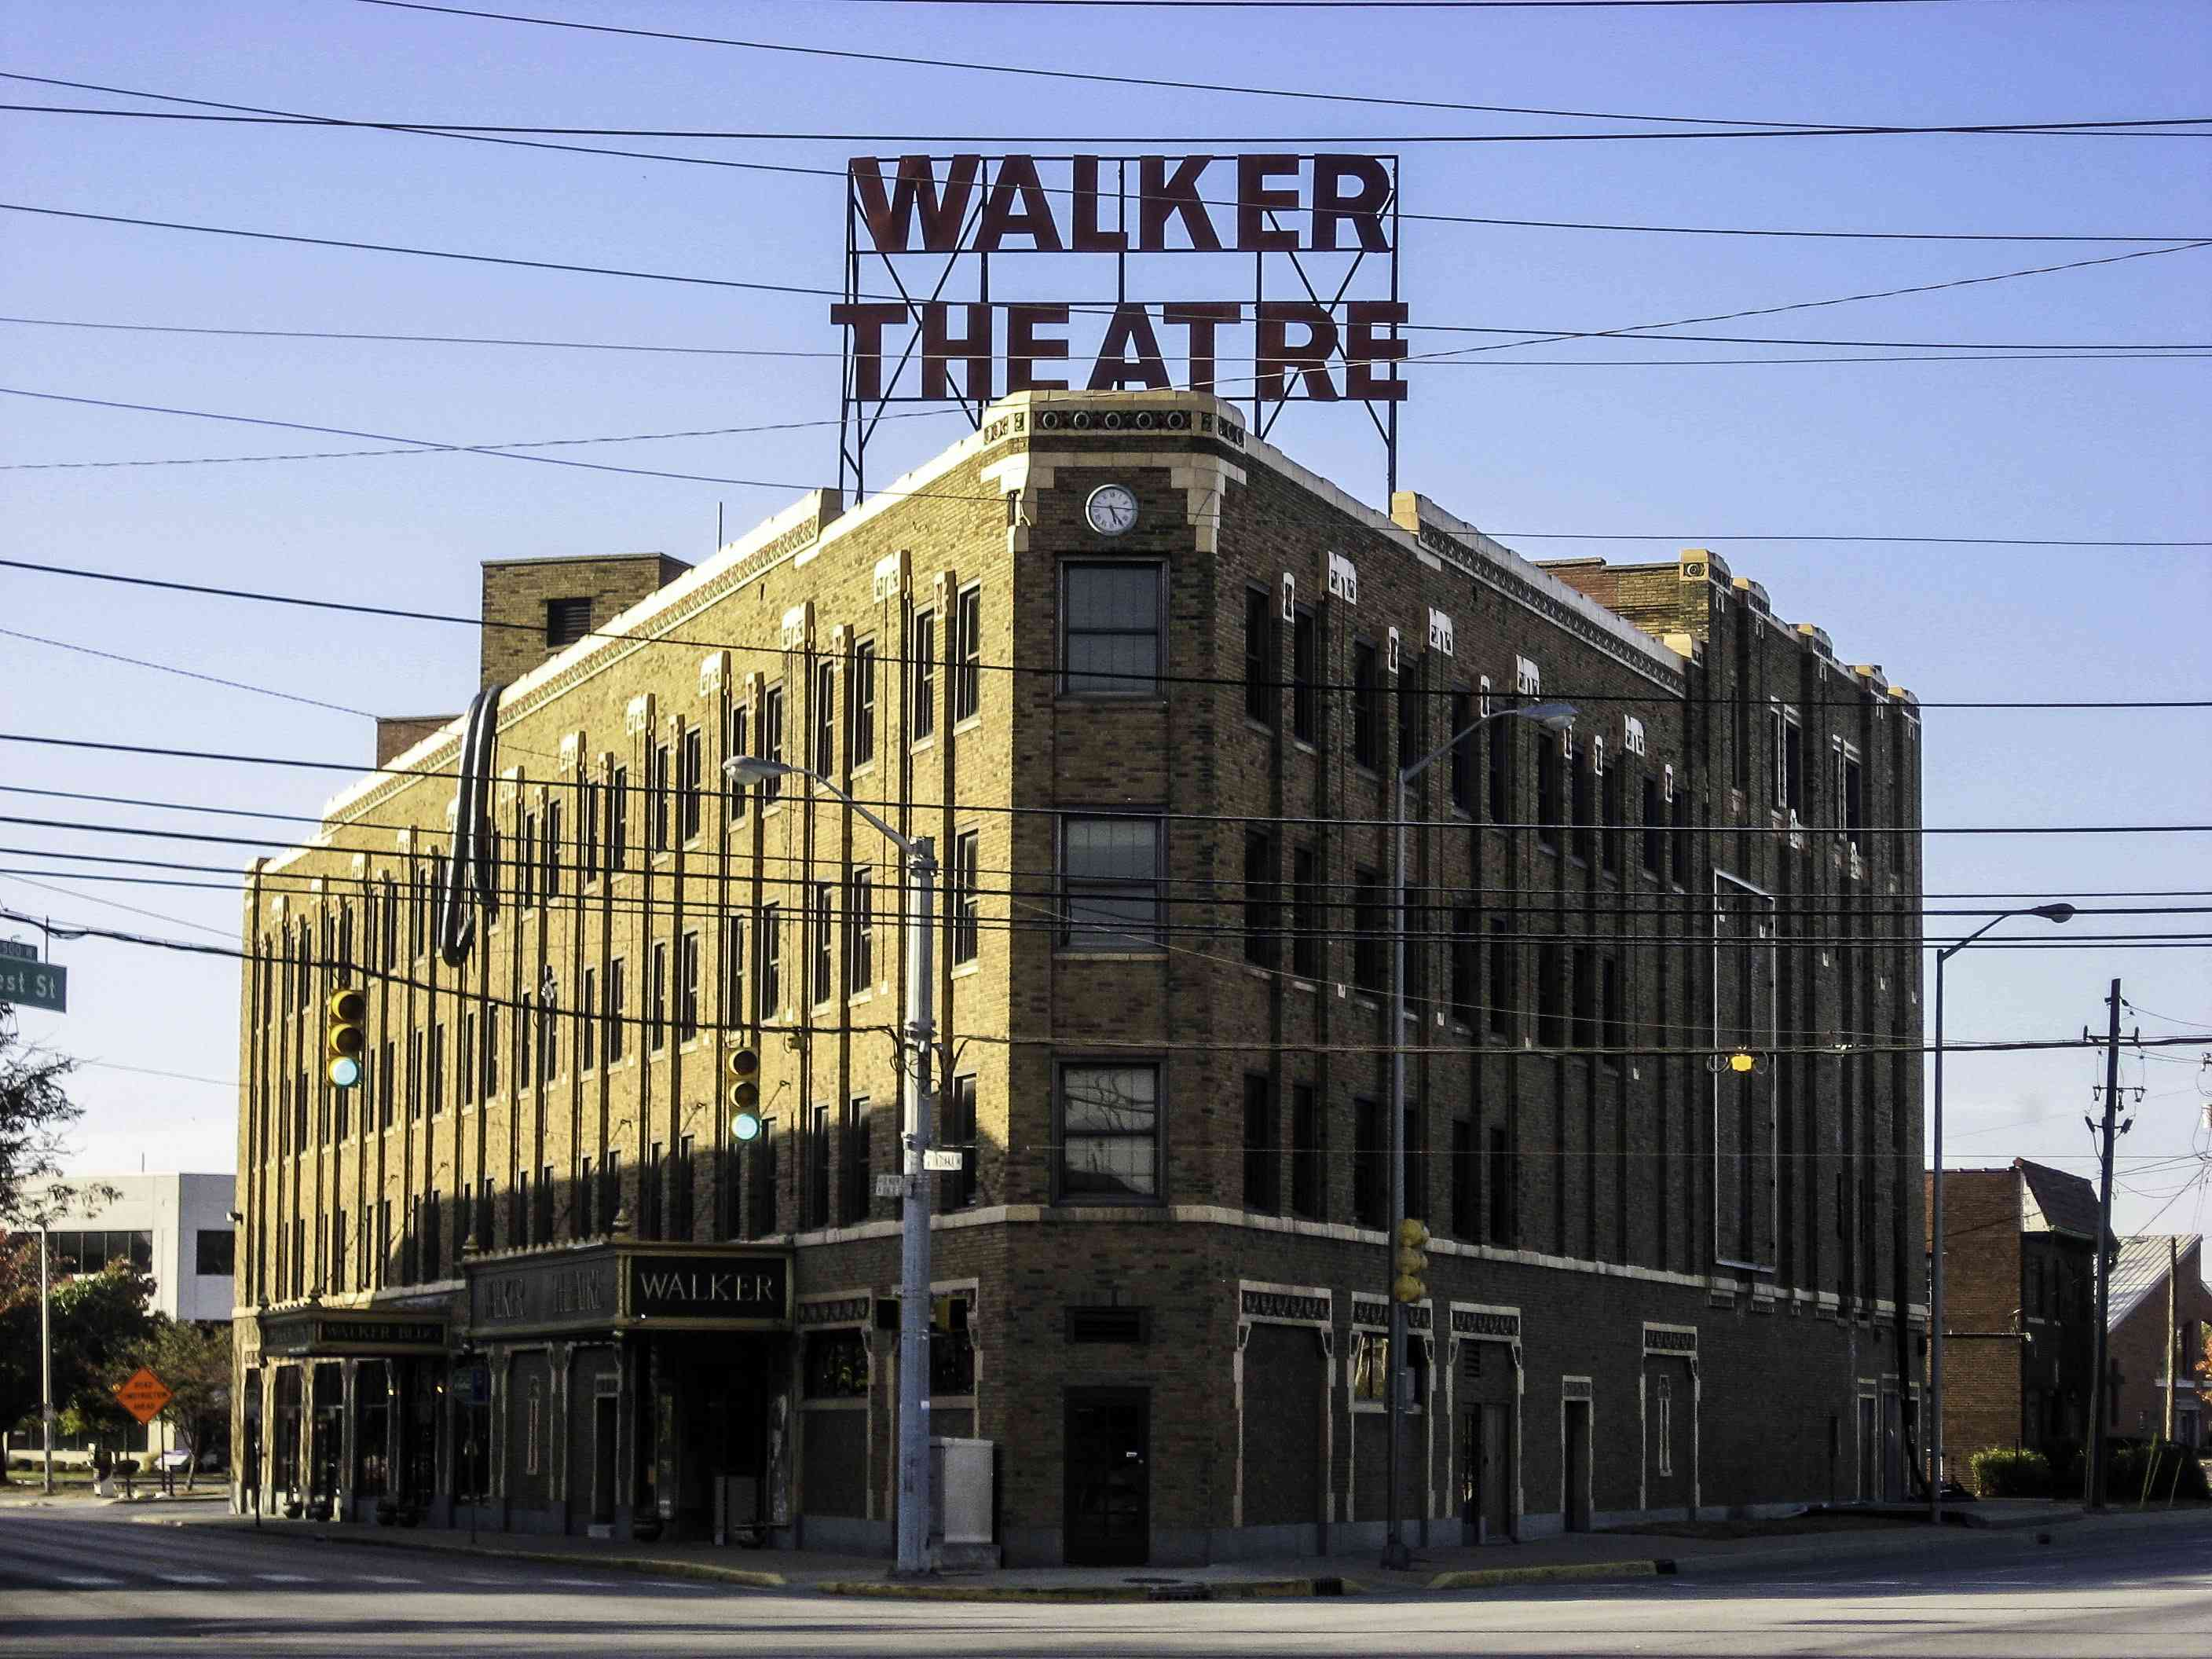 Madame Walker Theatre Center in Indianapolis, Indiana.